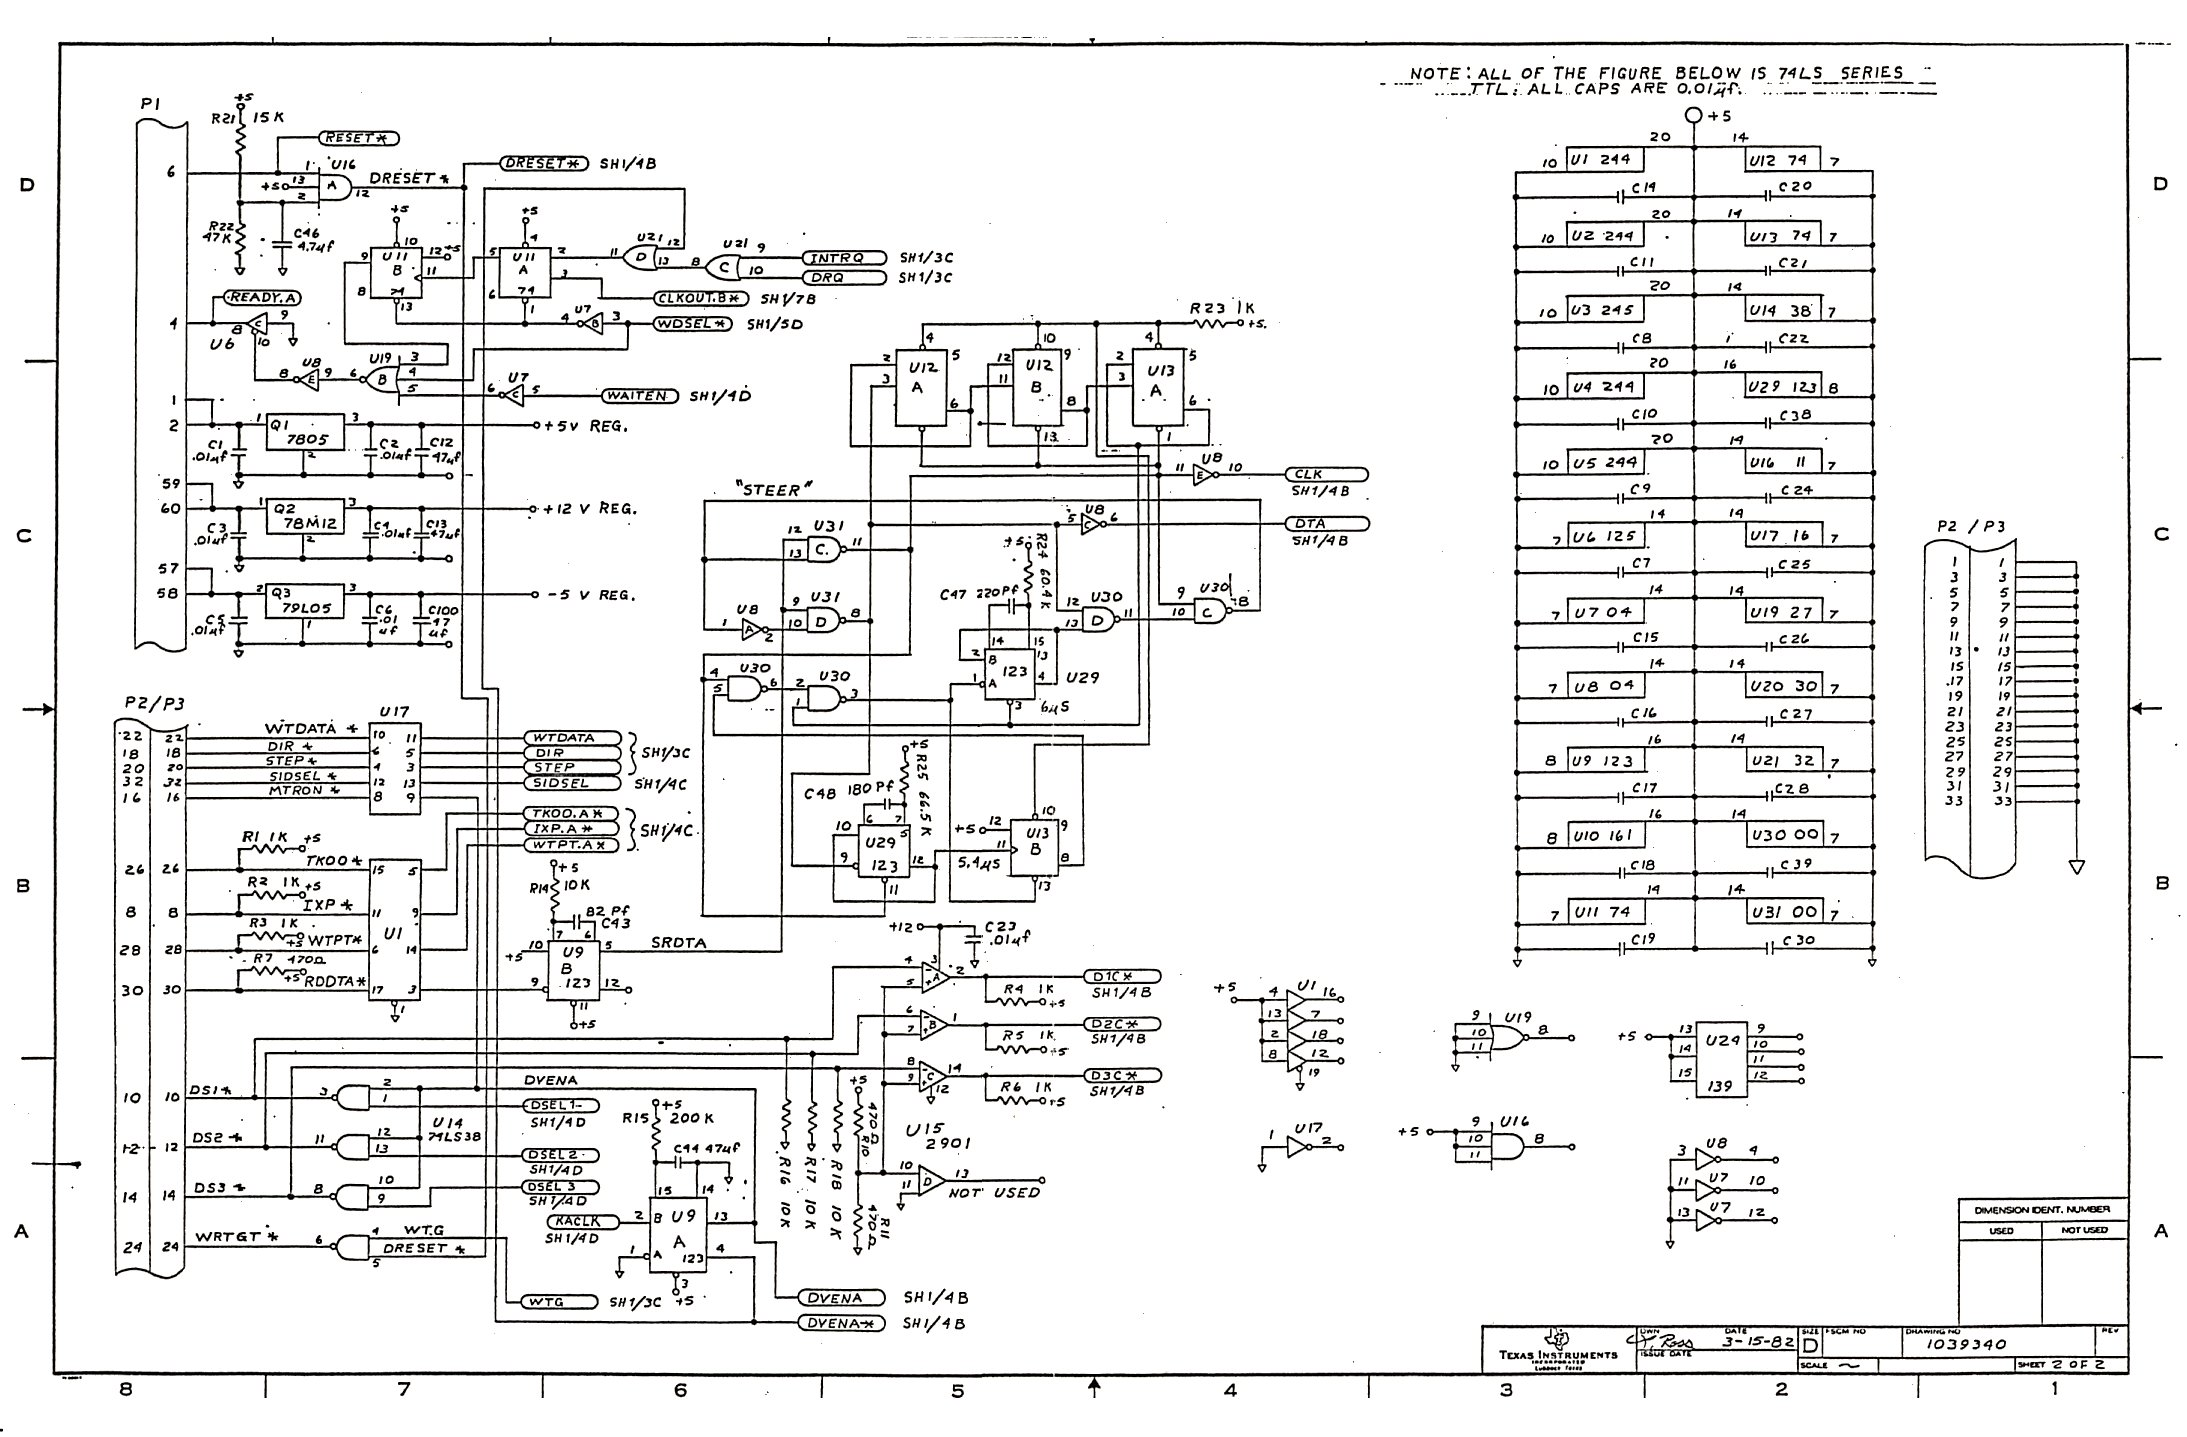 Ti99 Ti 99 4a Hardware Texas Instruments Rs232 Schematic Php1700 Rs 232 Sidecar Interface Page 1 Php1220 Card 2